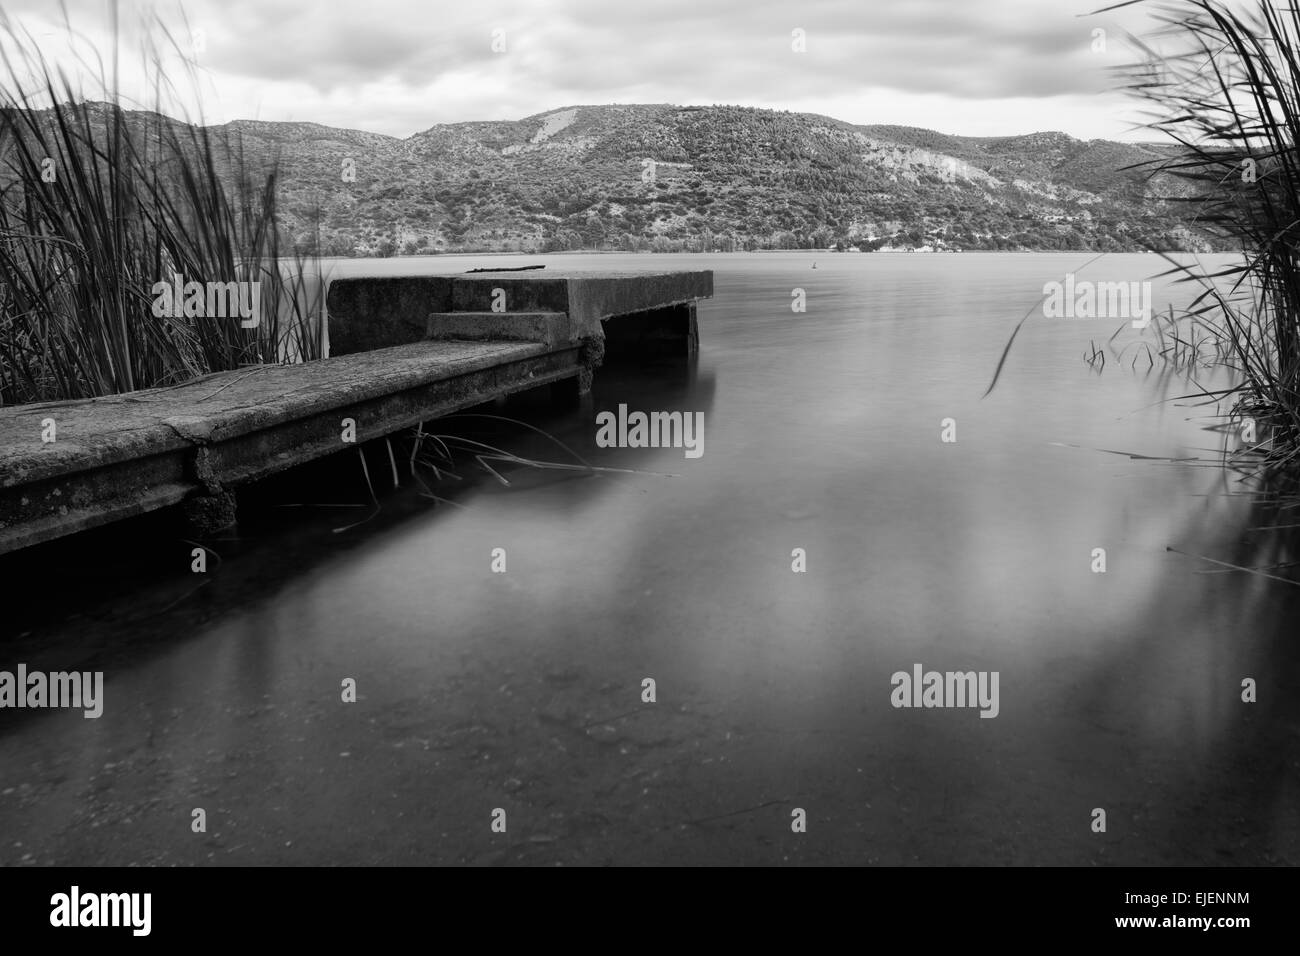 Concret pier landscape of anguix reservoir guadalajara spain stock image